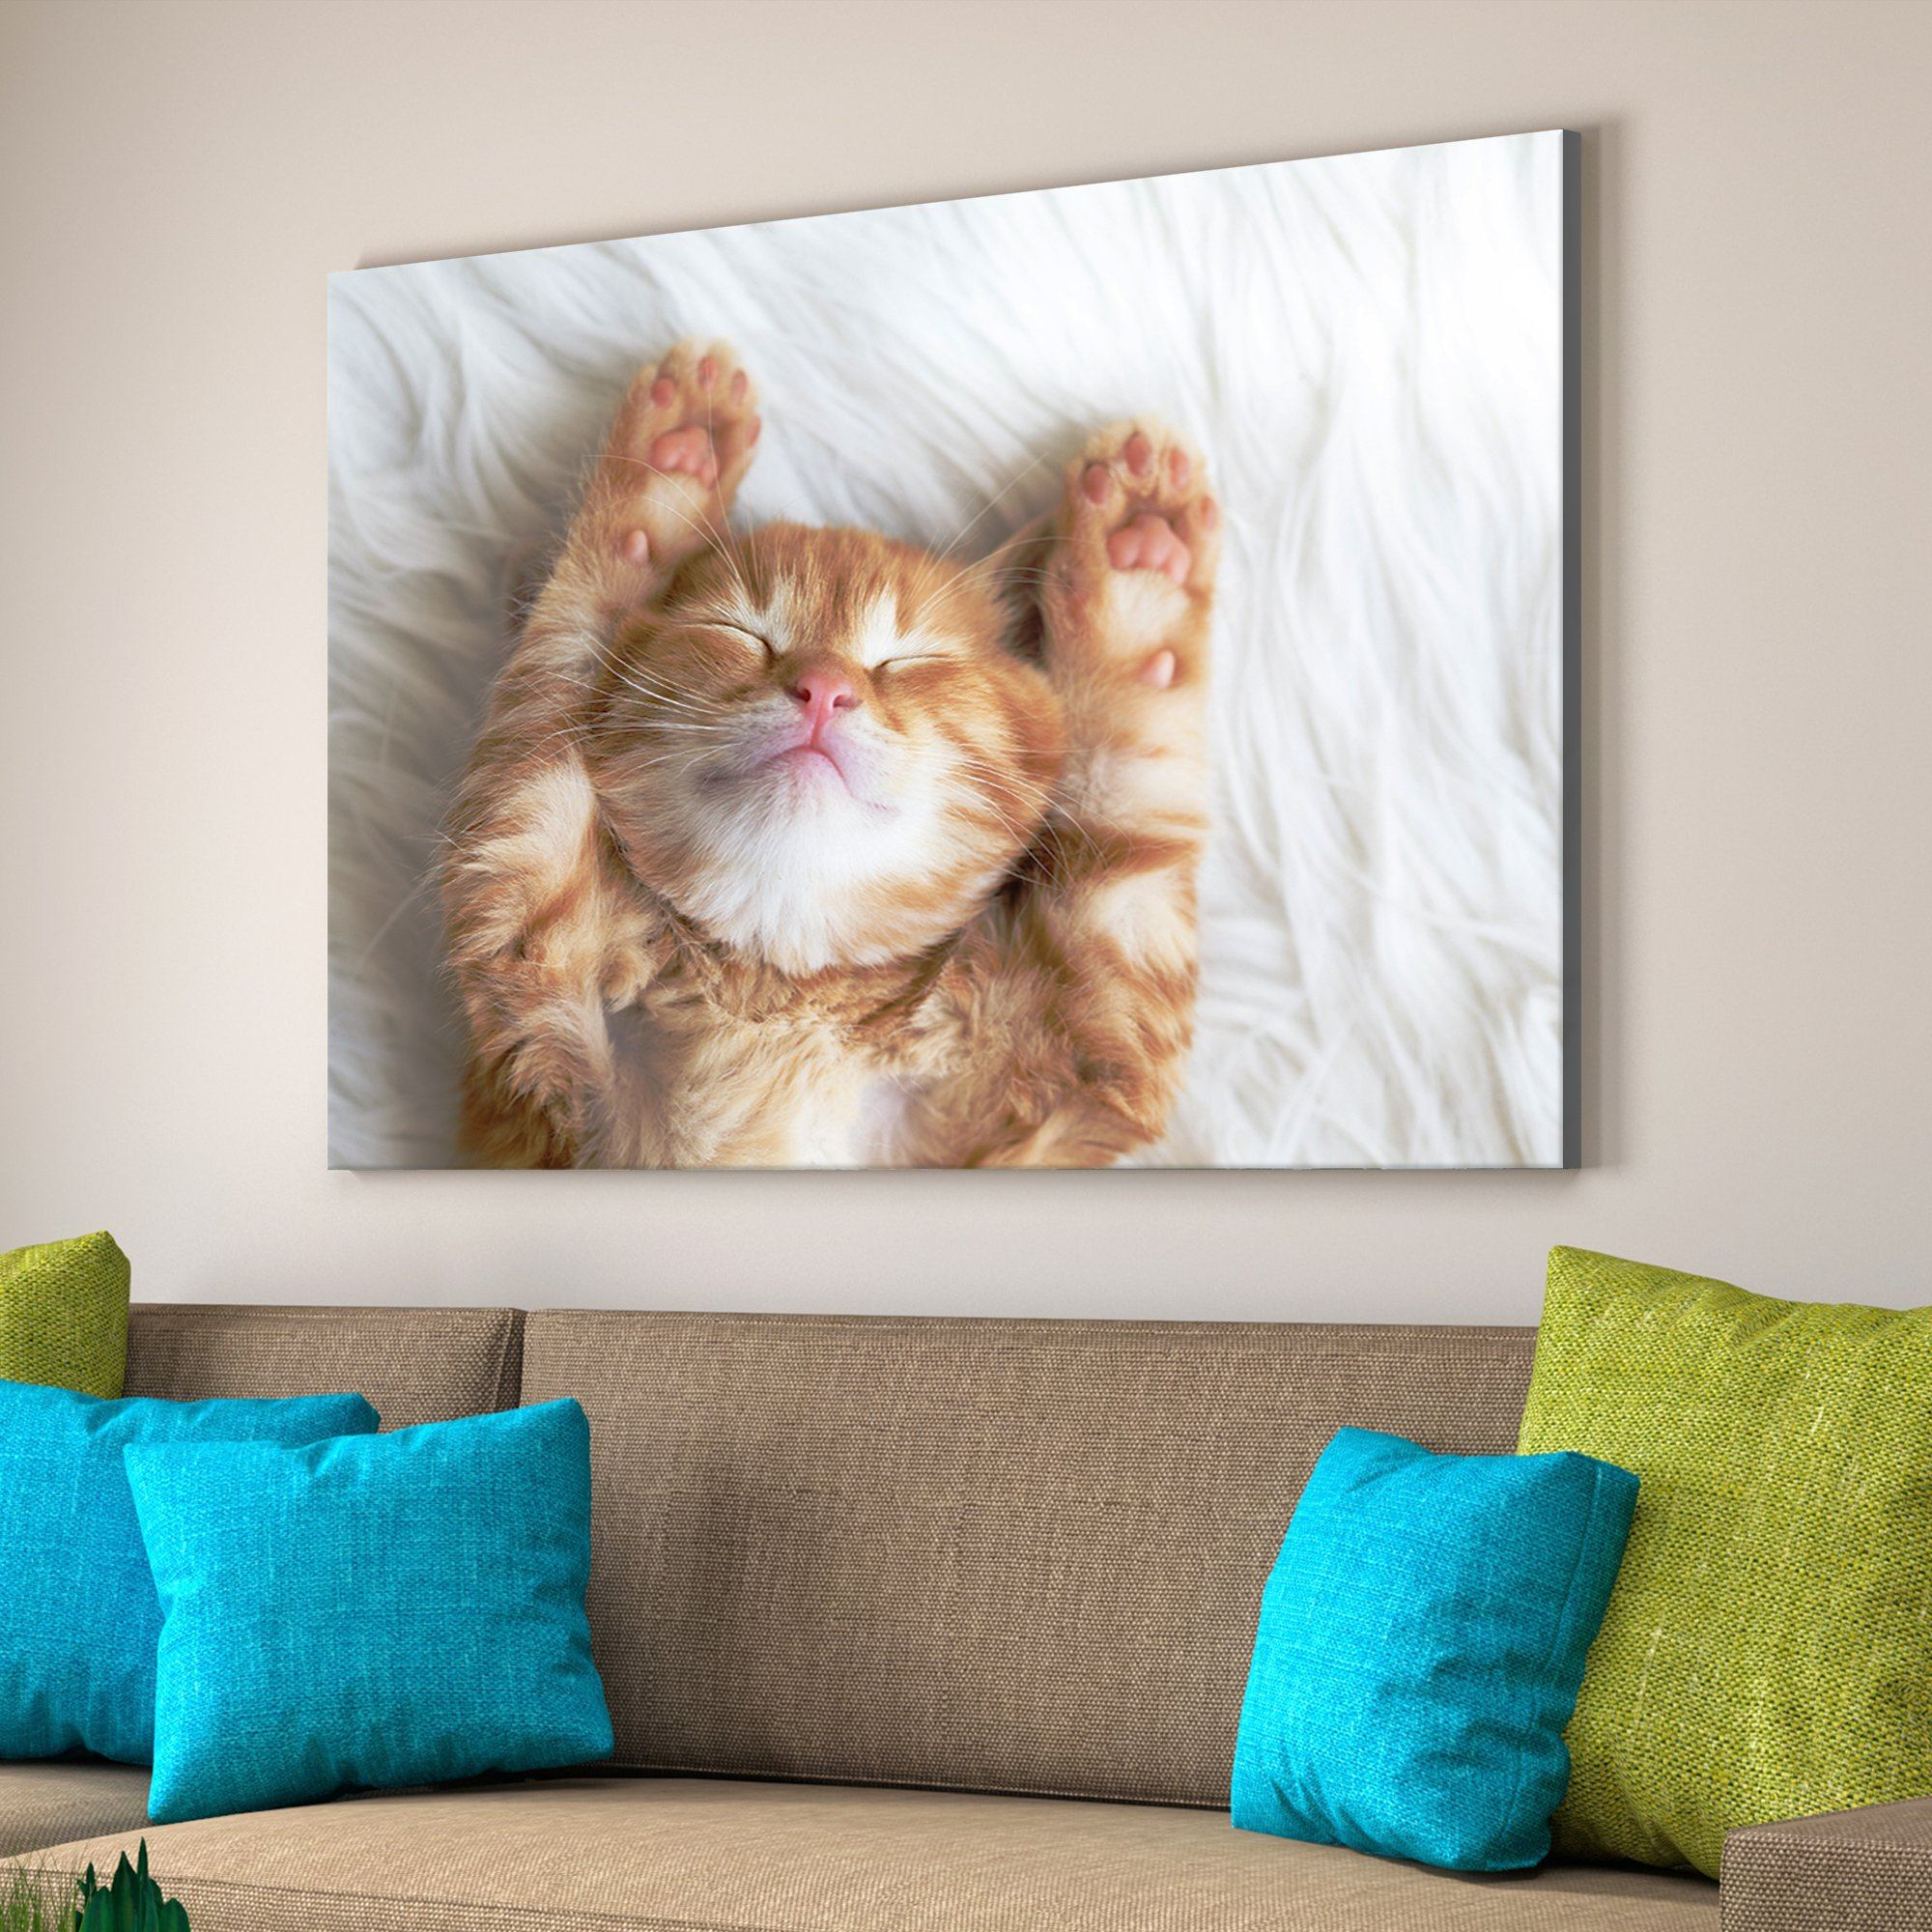 Sleeping Kitten bedroom art